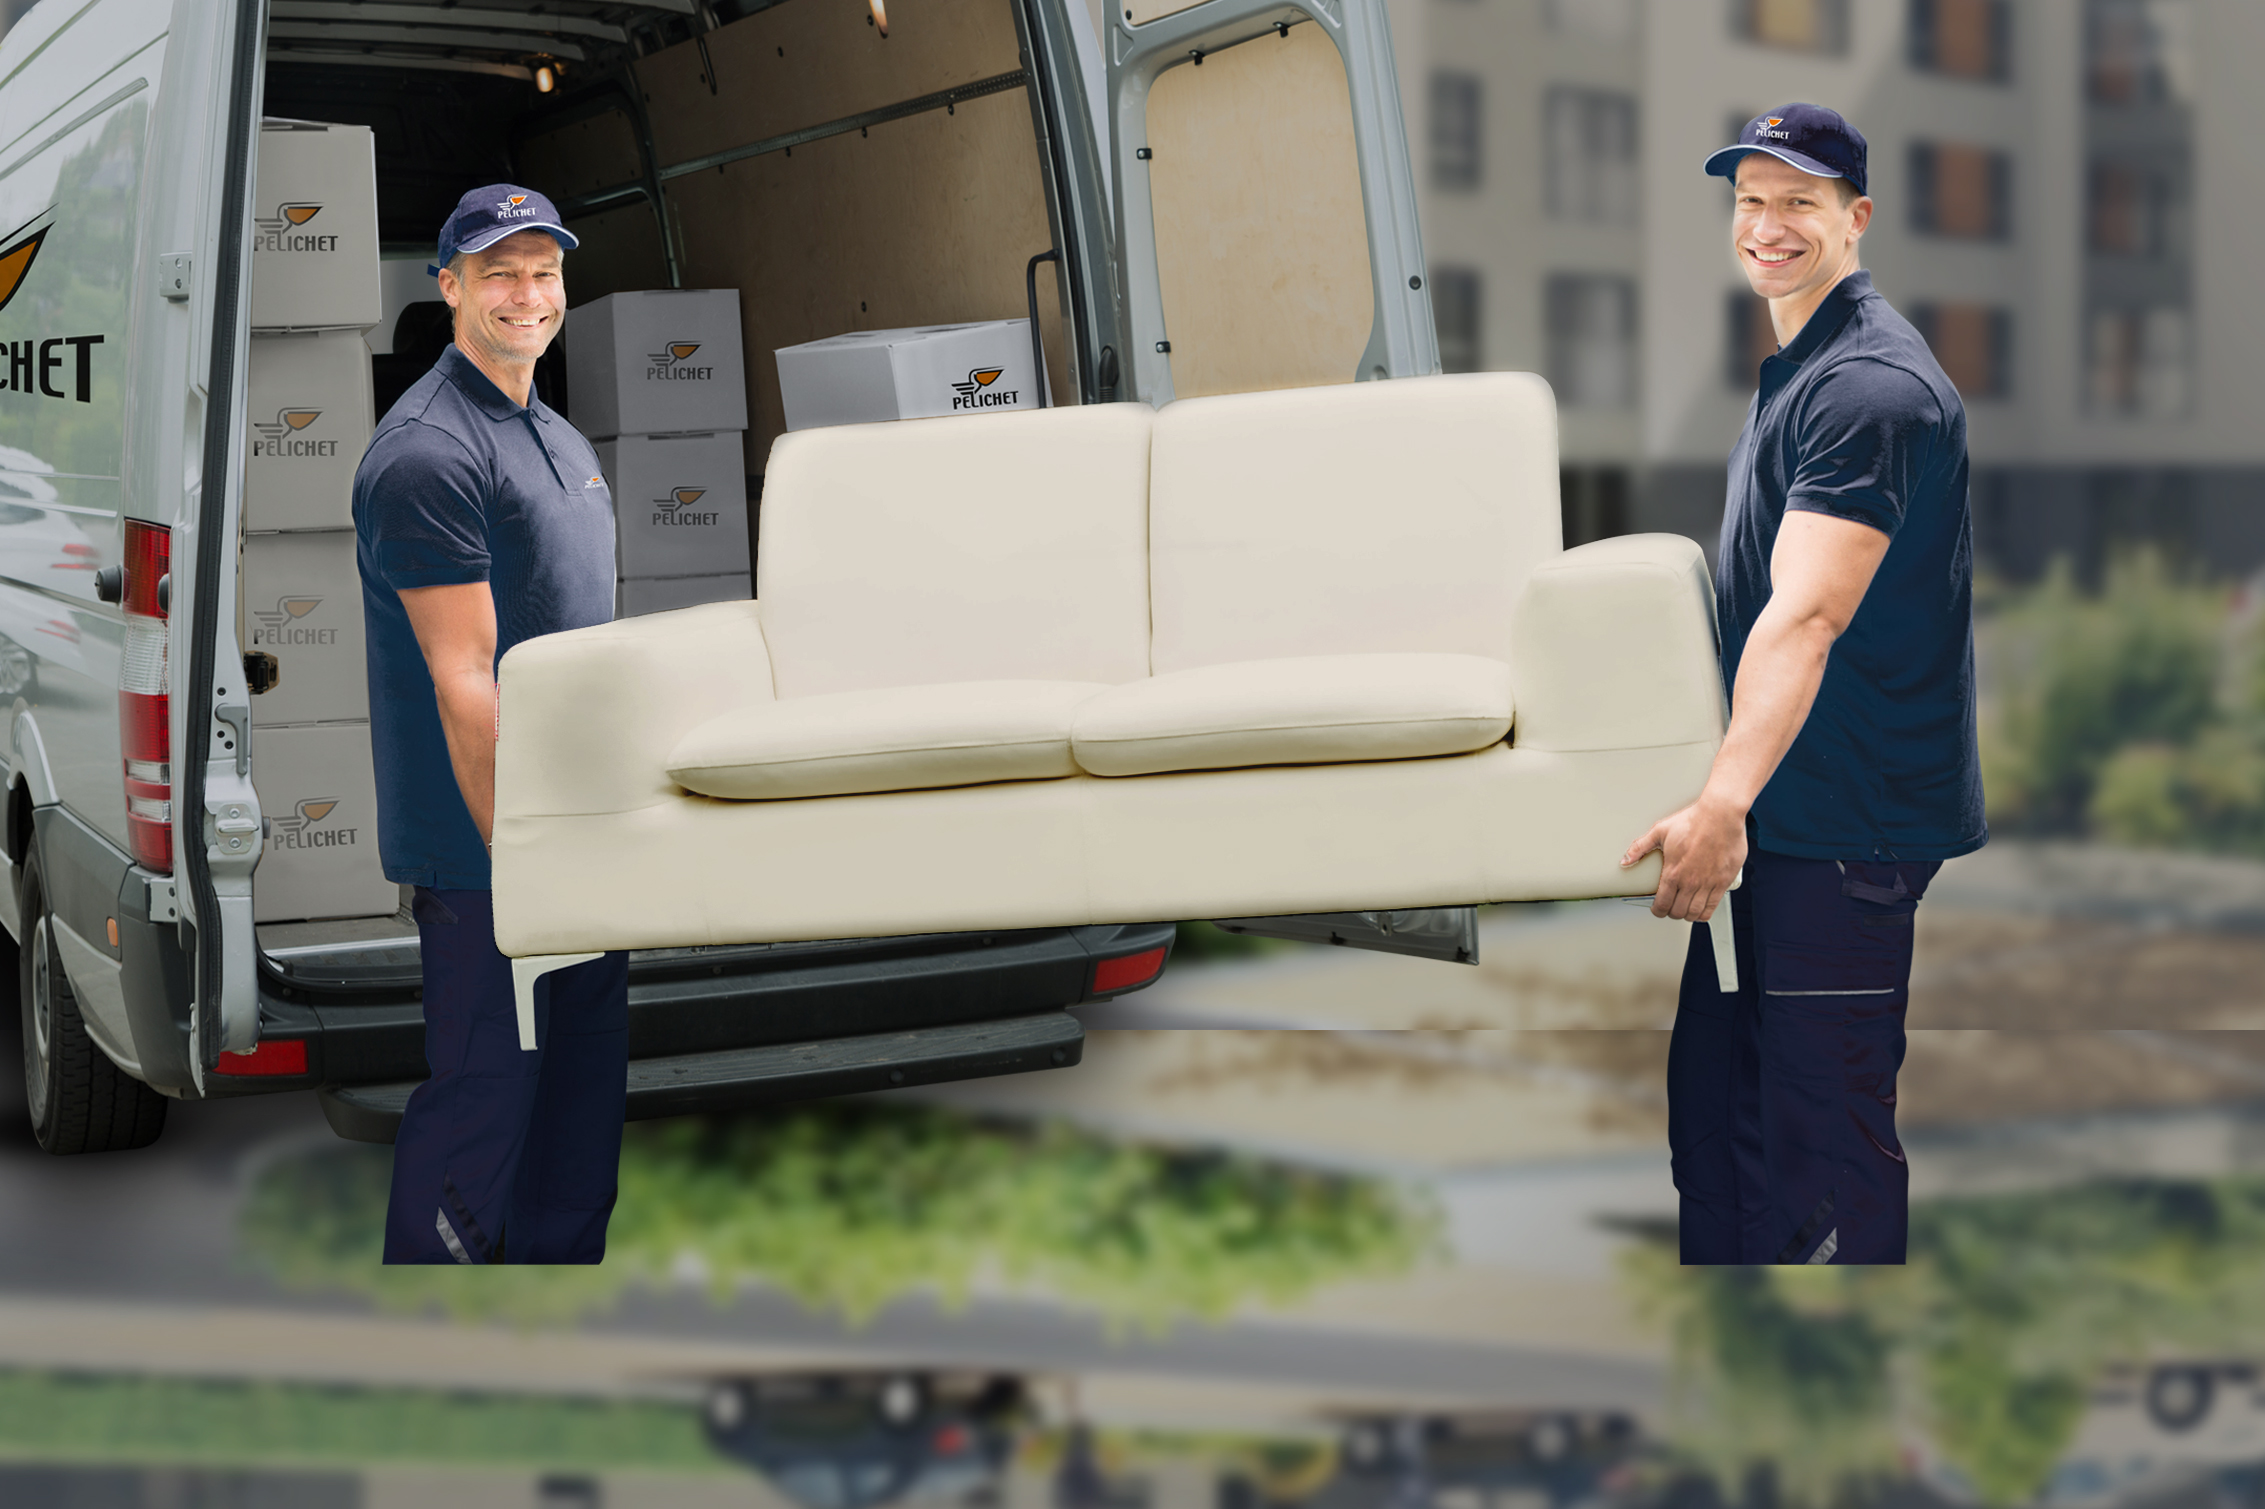 The Pelichet Group takes care of your relocation needs